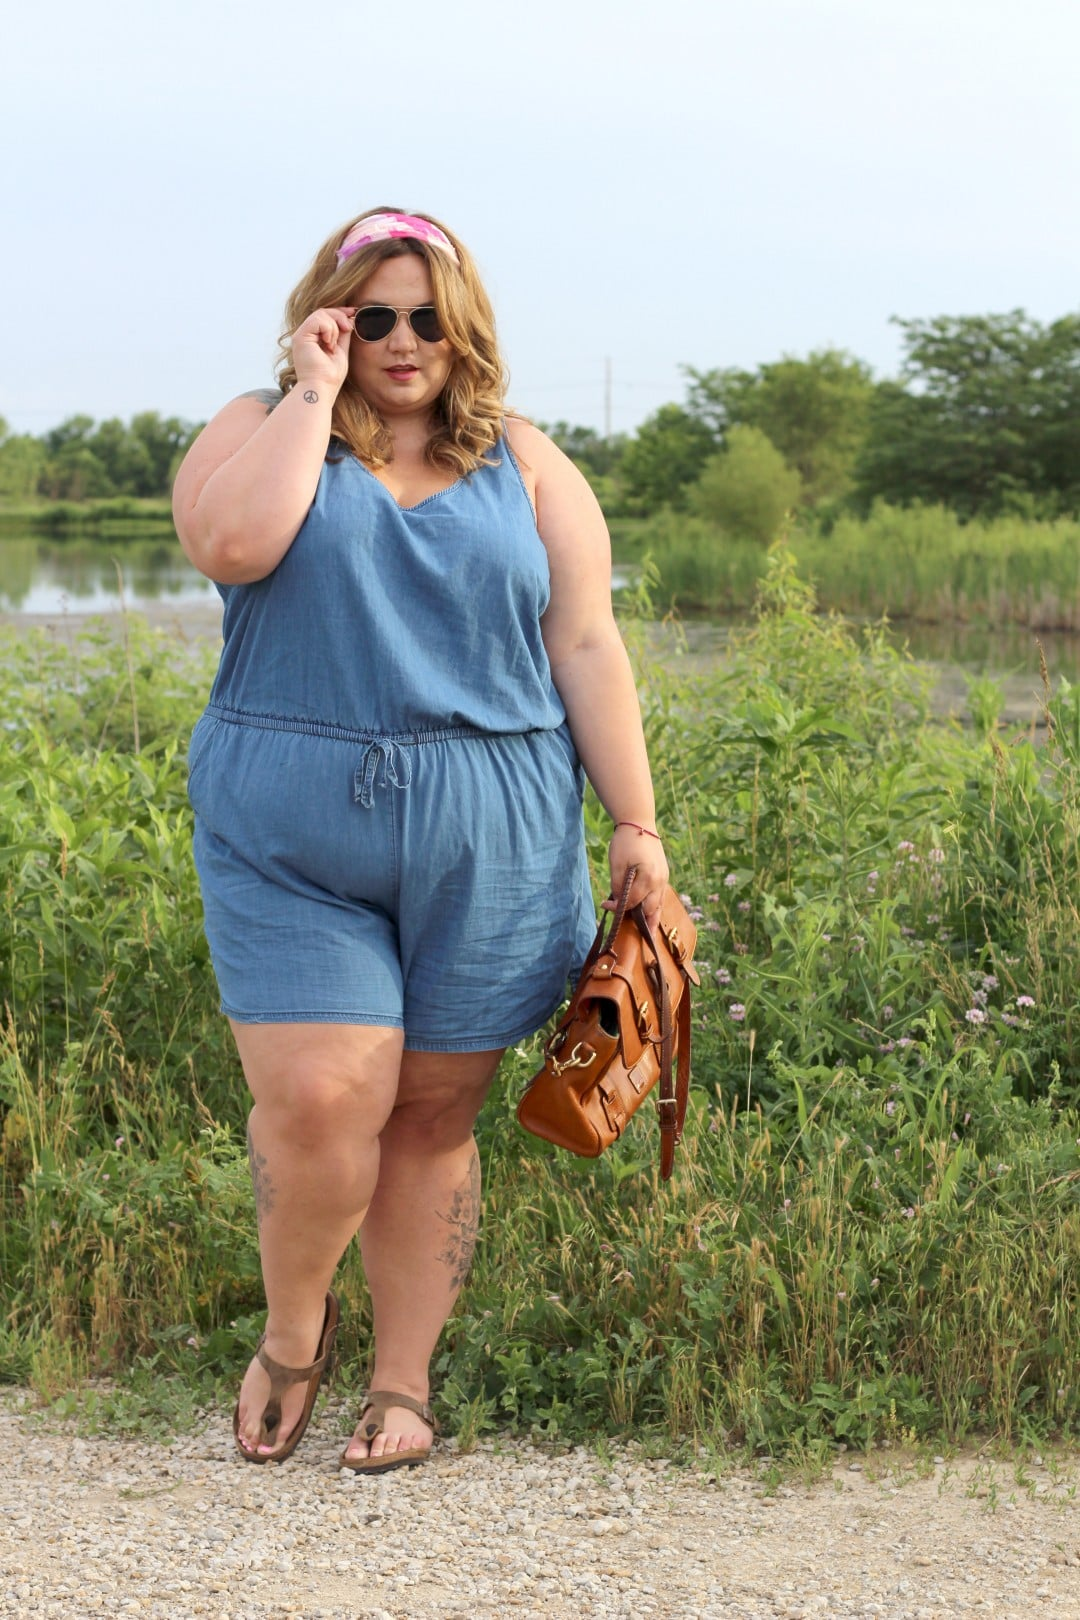 plump woman dating site Chubby girls - free dating users interested in chubby girls because i don't like typing too much up here but i must say i do like chubby girls alotbut i.